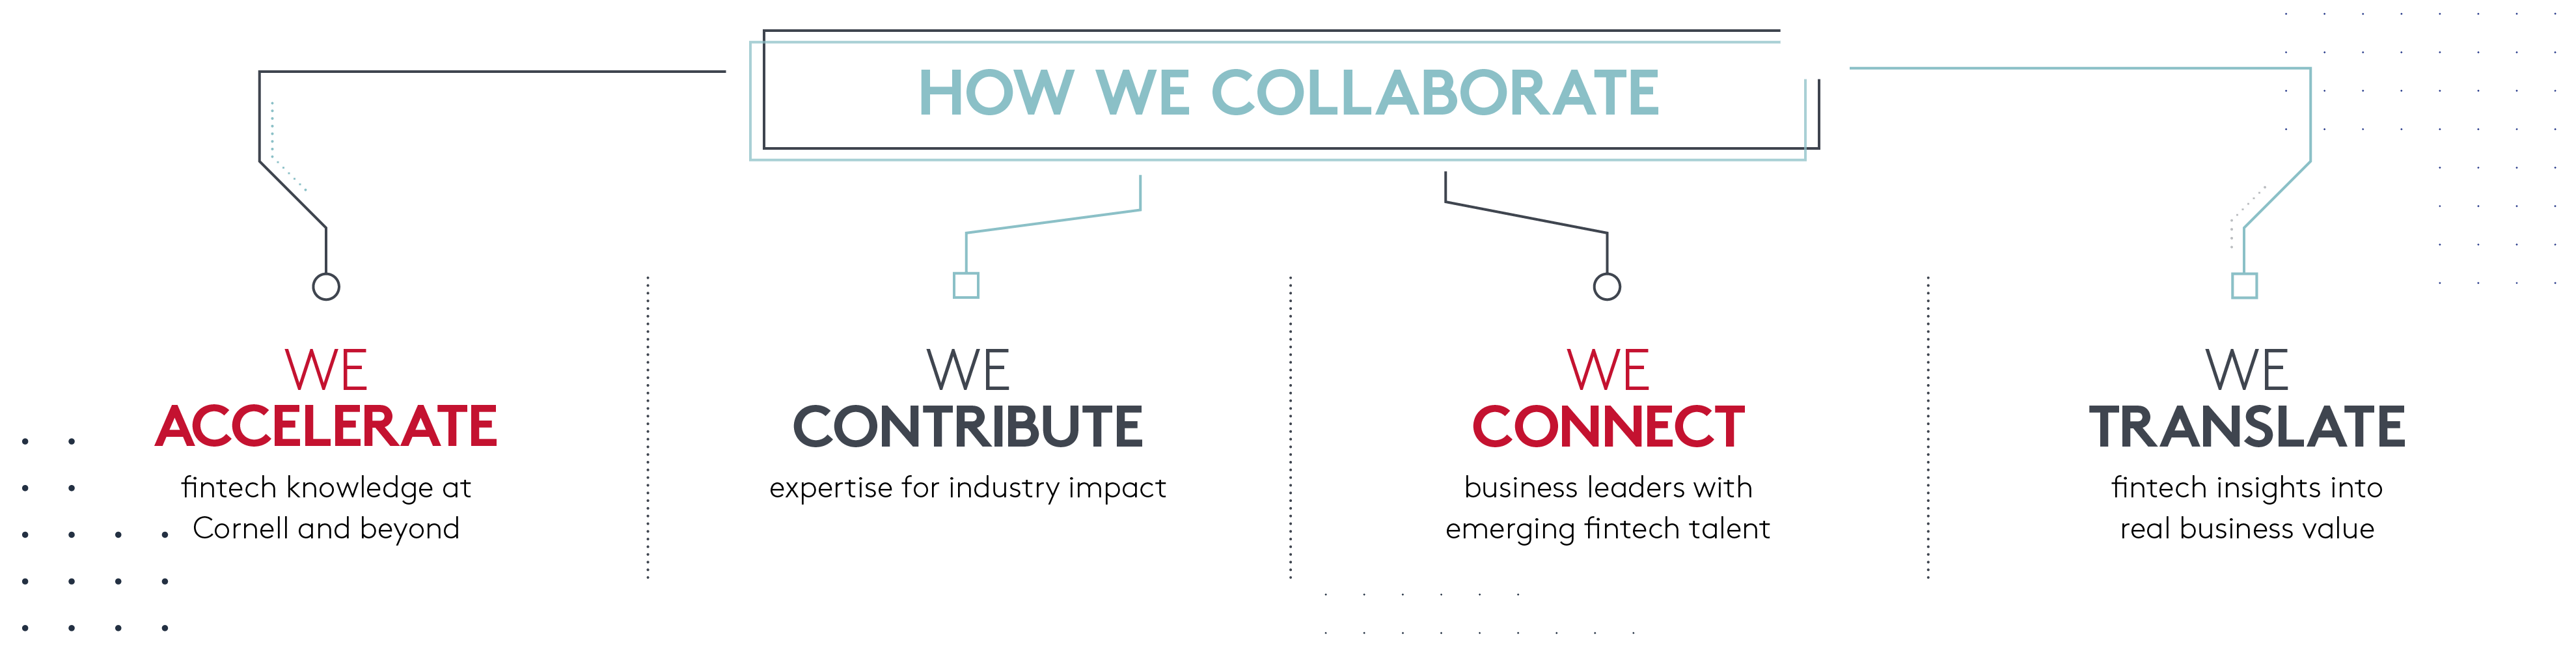 Infographic: How we collaborate: We accelerate fintech knowledge at Cornell and beyond, We contribute expertise for industry impact, We connect business leaders with emerging fintech talent, We translate fintech insights into real business value